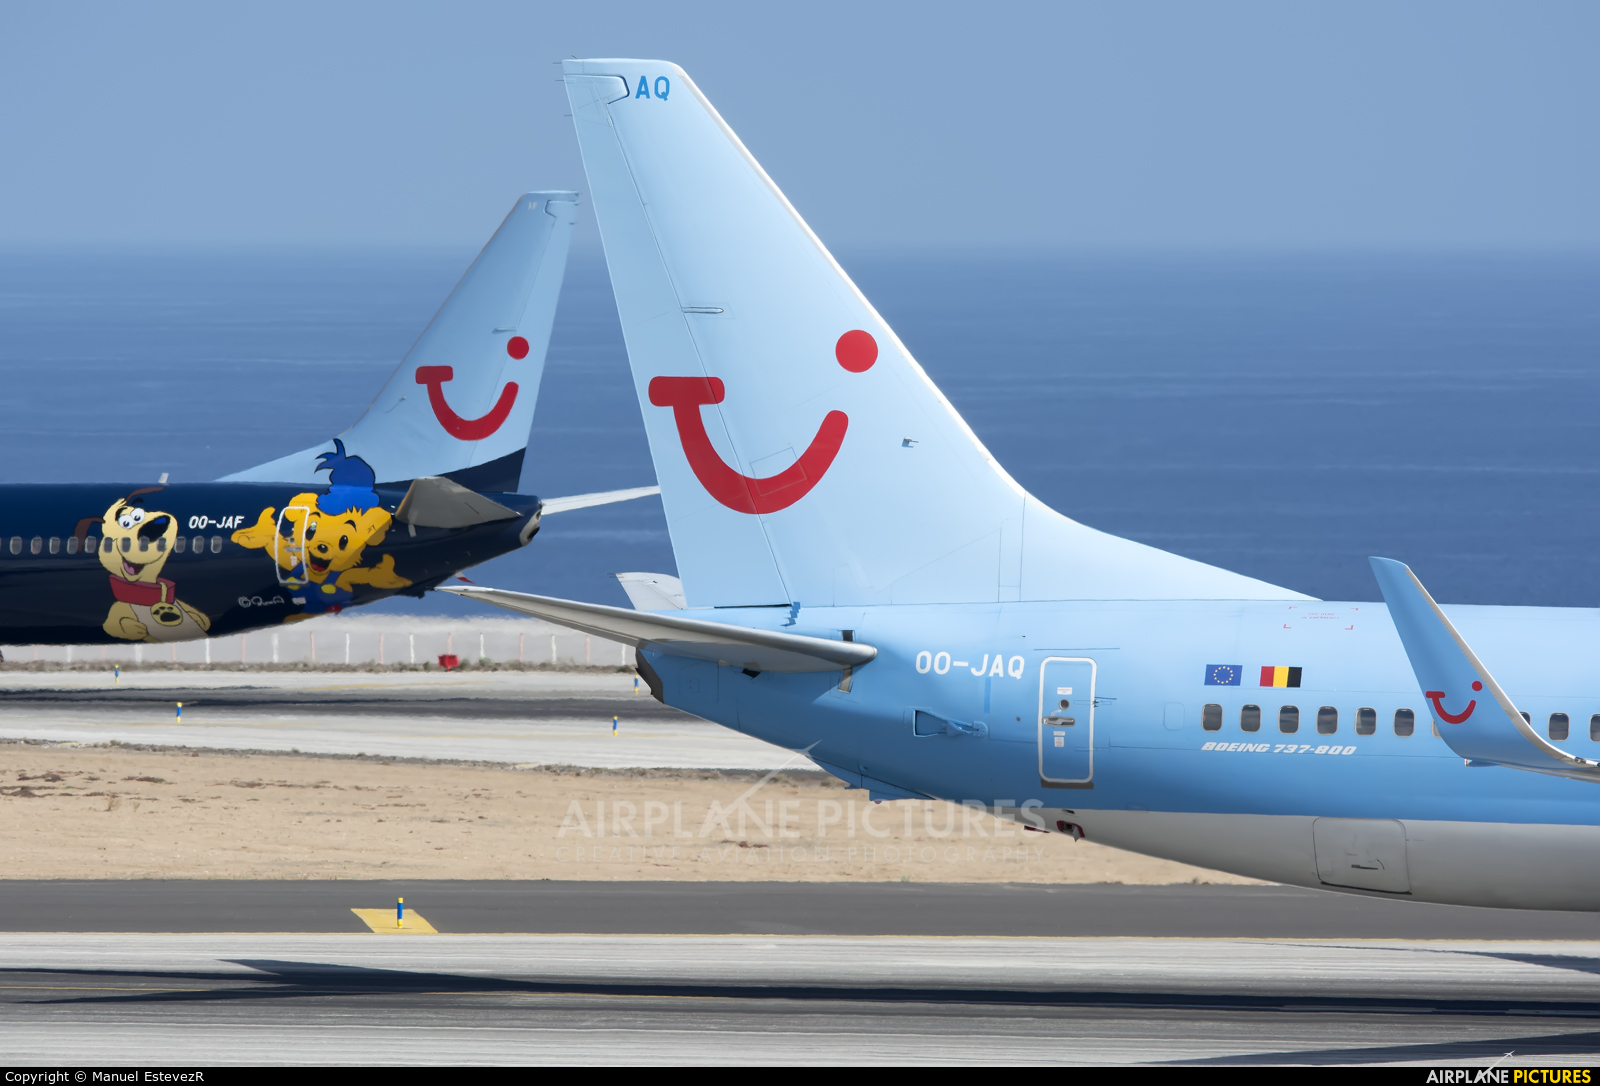 Jetairfly (TUI Airlines Belgium) OO-JAQ aircraft at Tenerife Sur - Reina Sofia